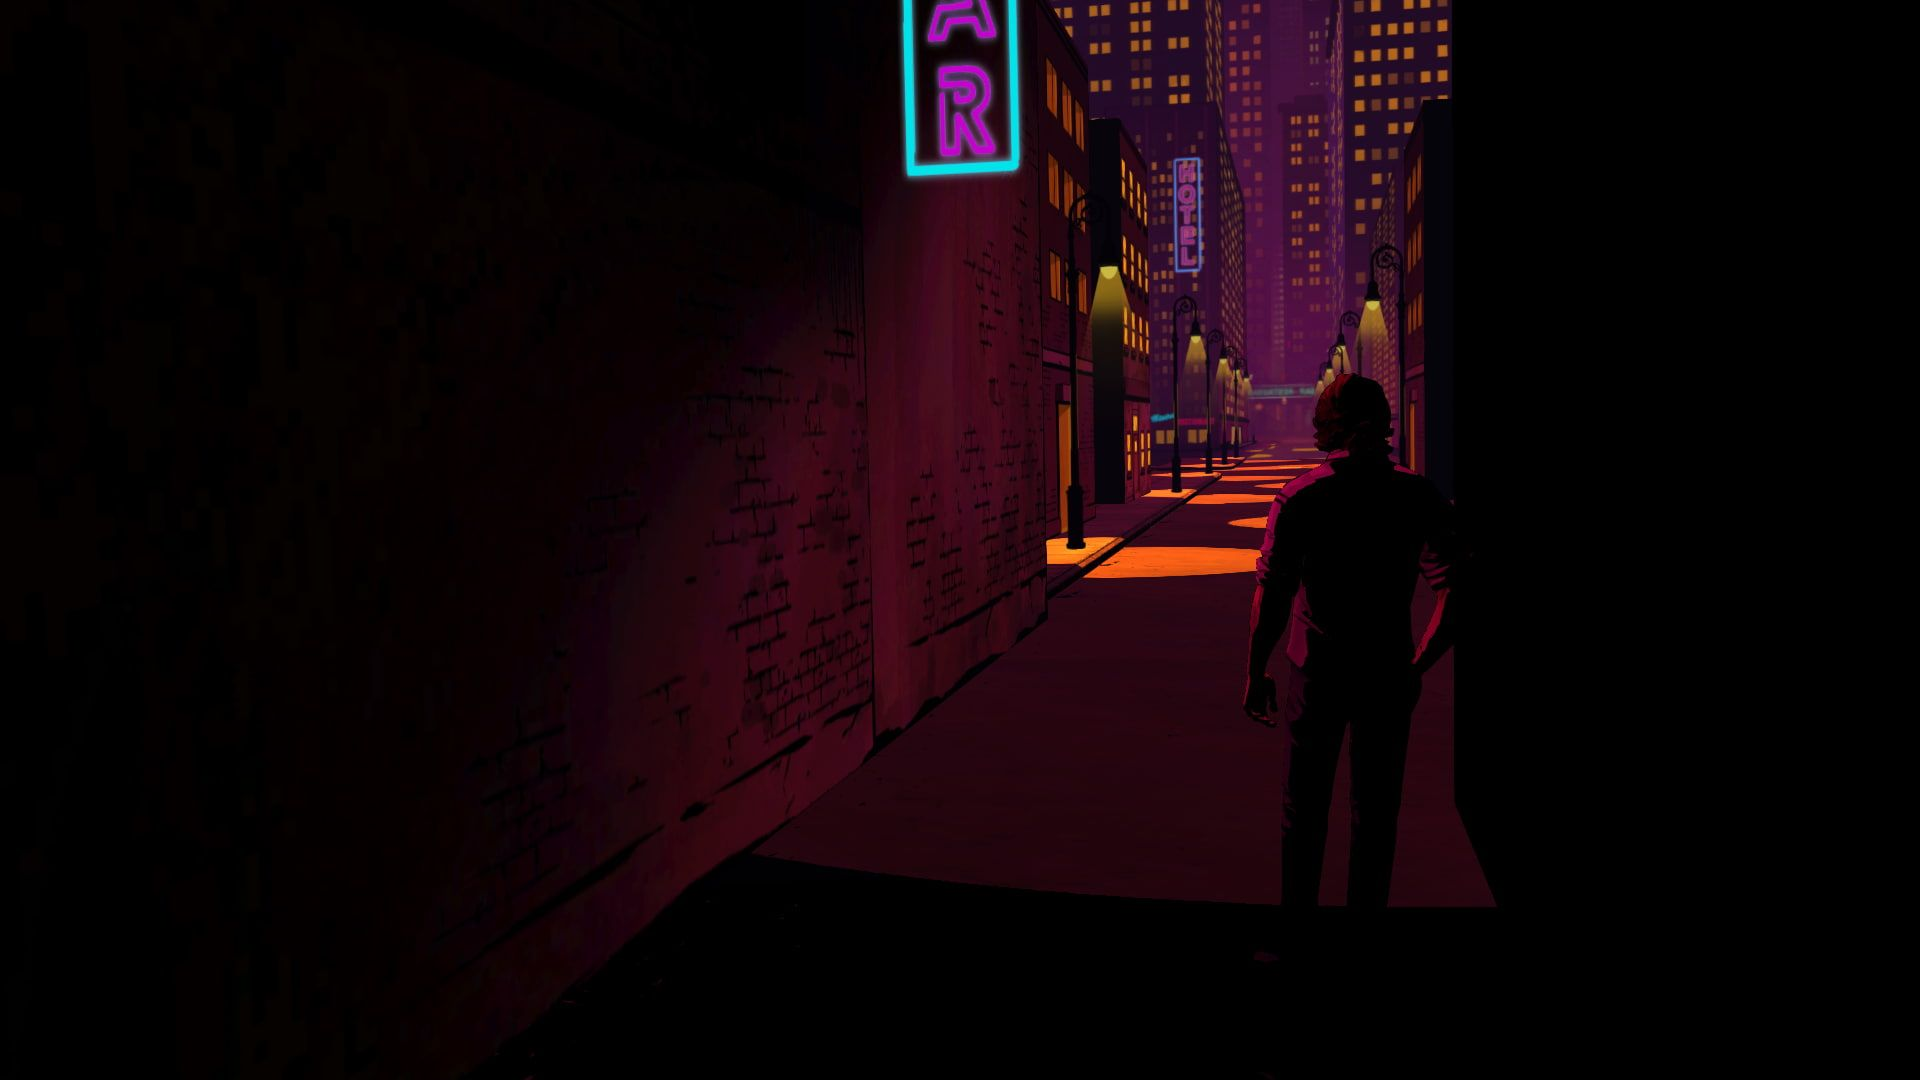 The Wolf Among Us Video Games 1080p Wallpaper Hdwallpaper Desktop The Wolf Among Us Computer Tower Hd Wallpaper